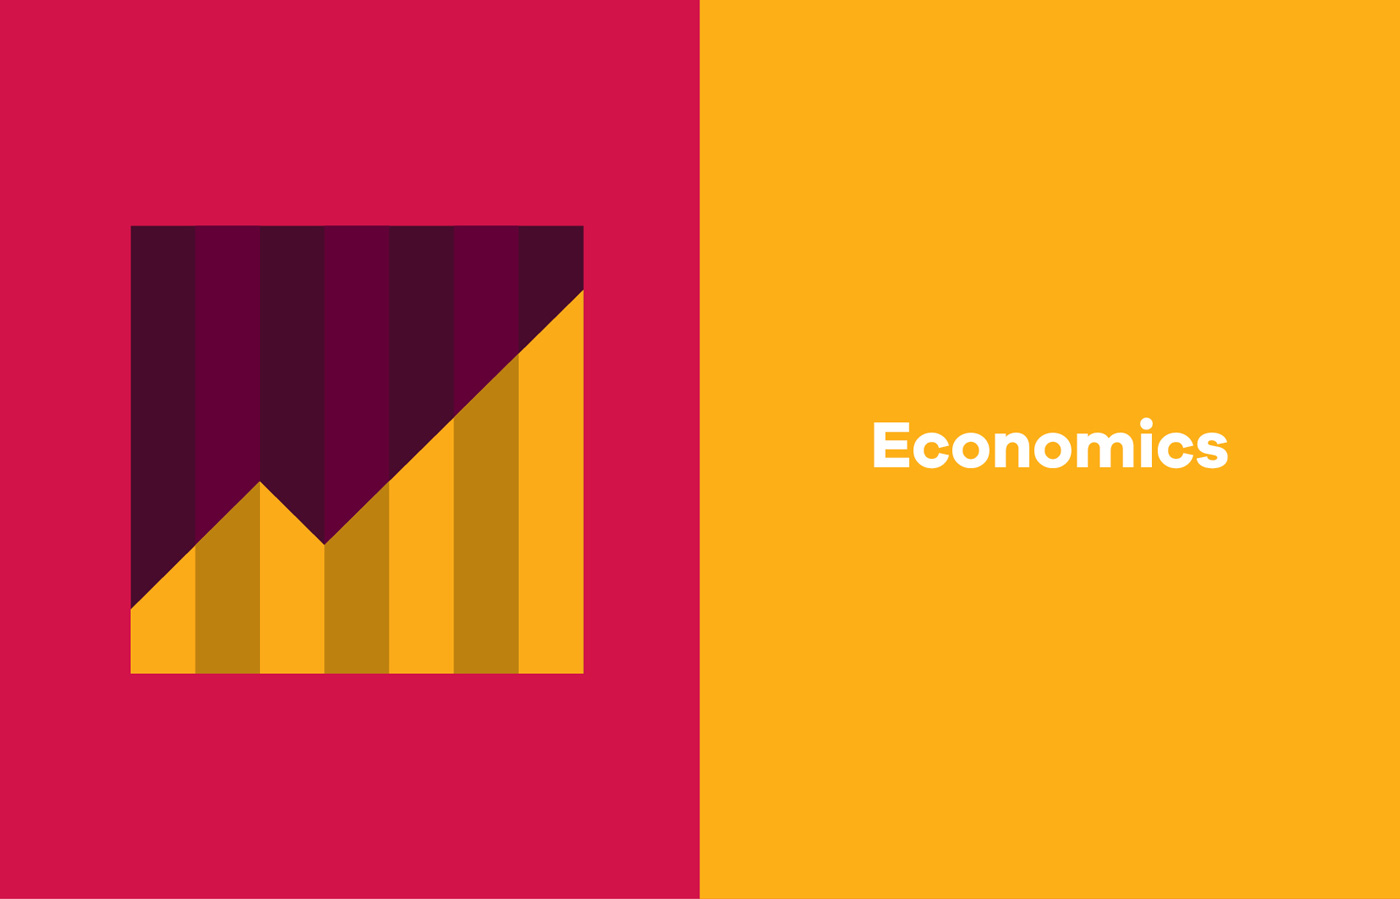 UL Bachelor of Arts campaign graphic design and iconography for economics